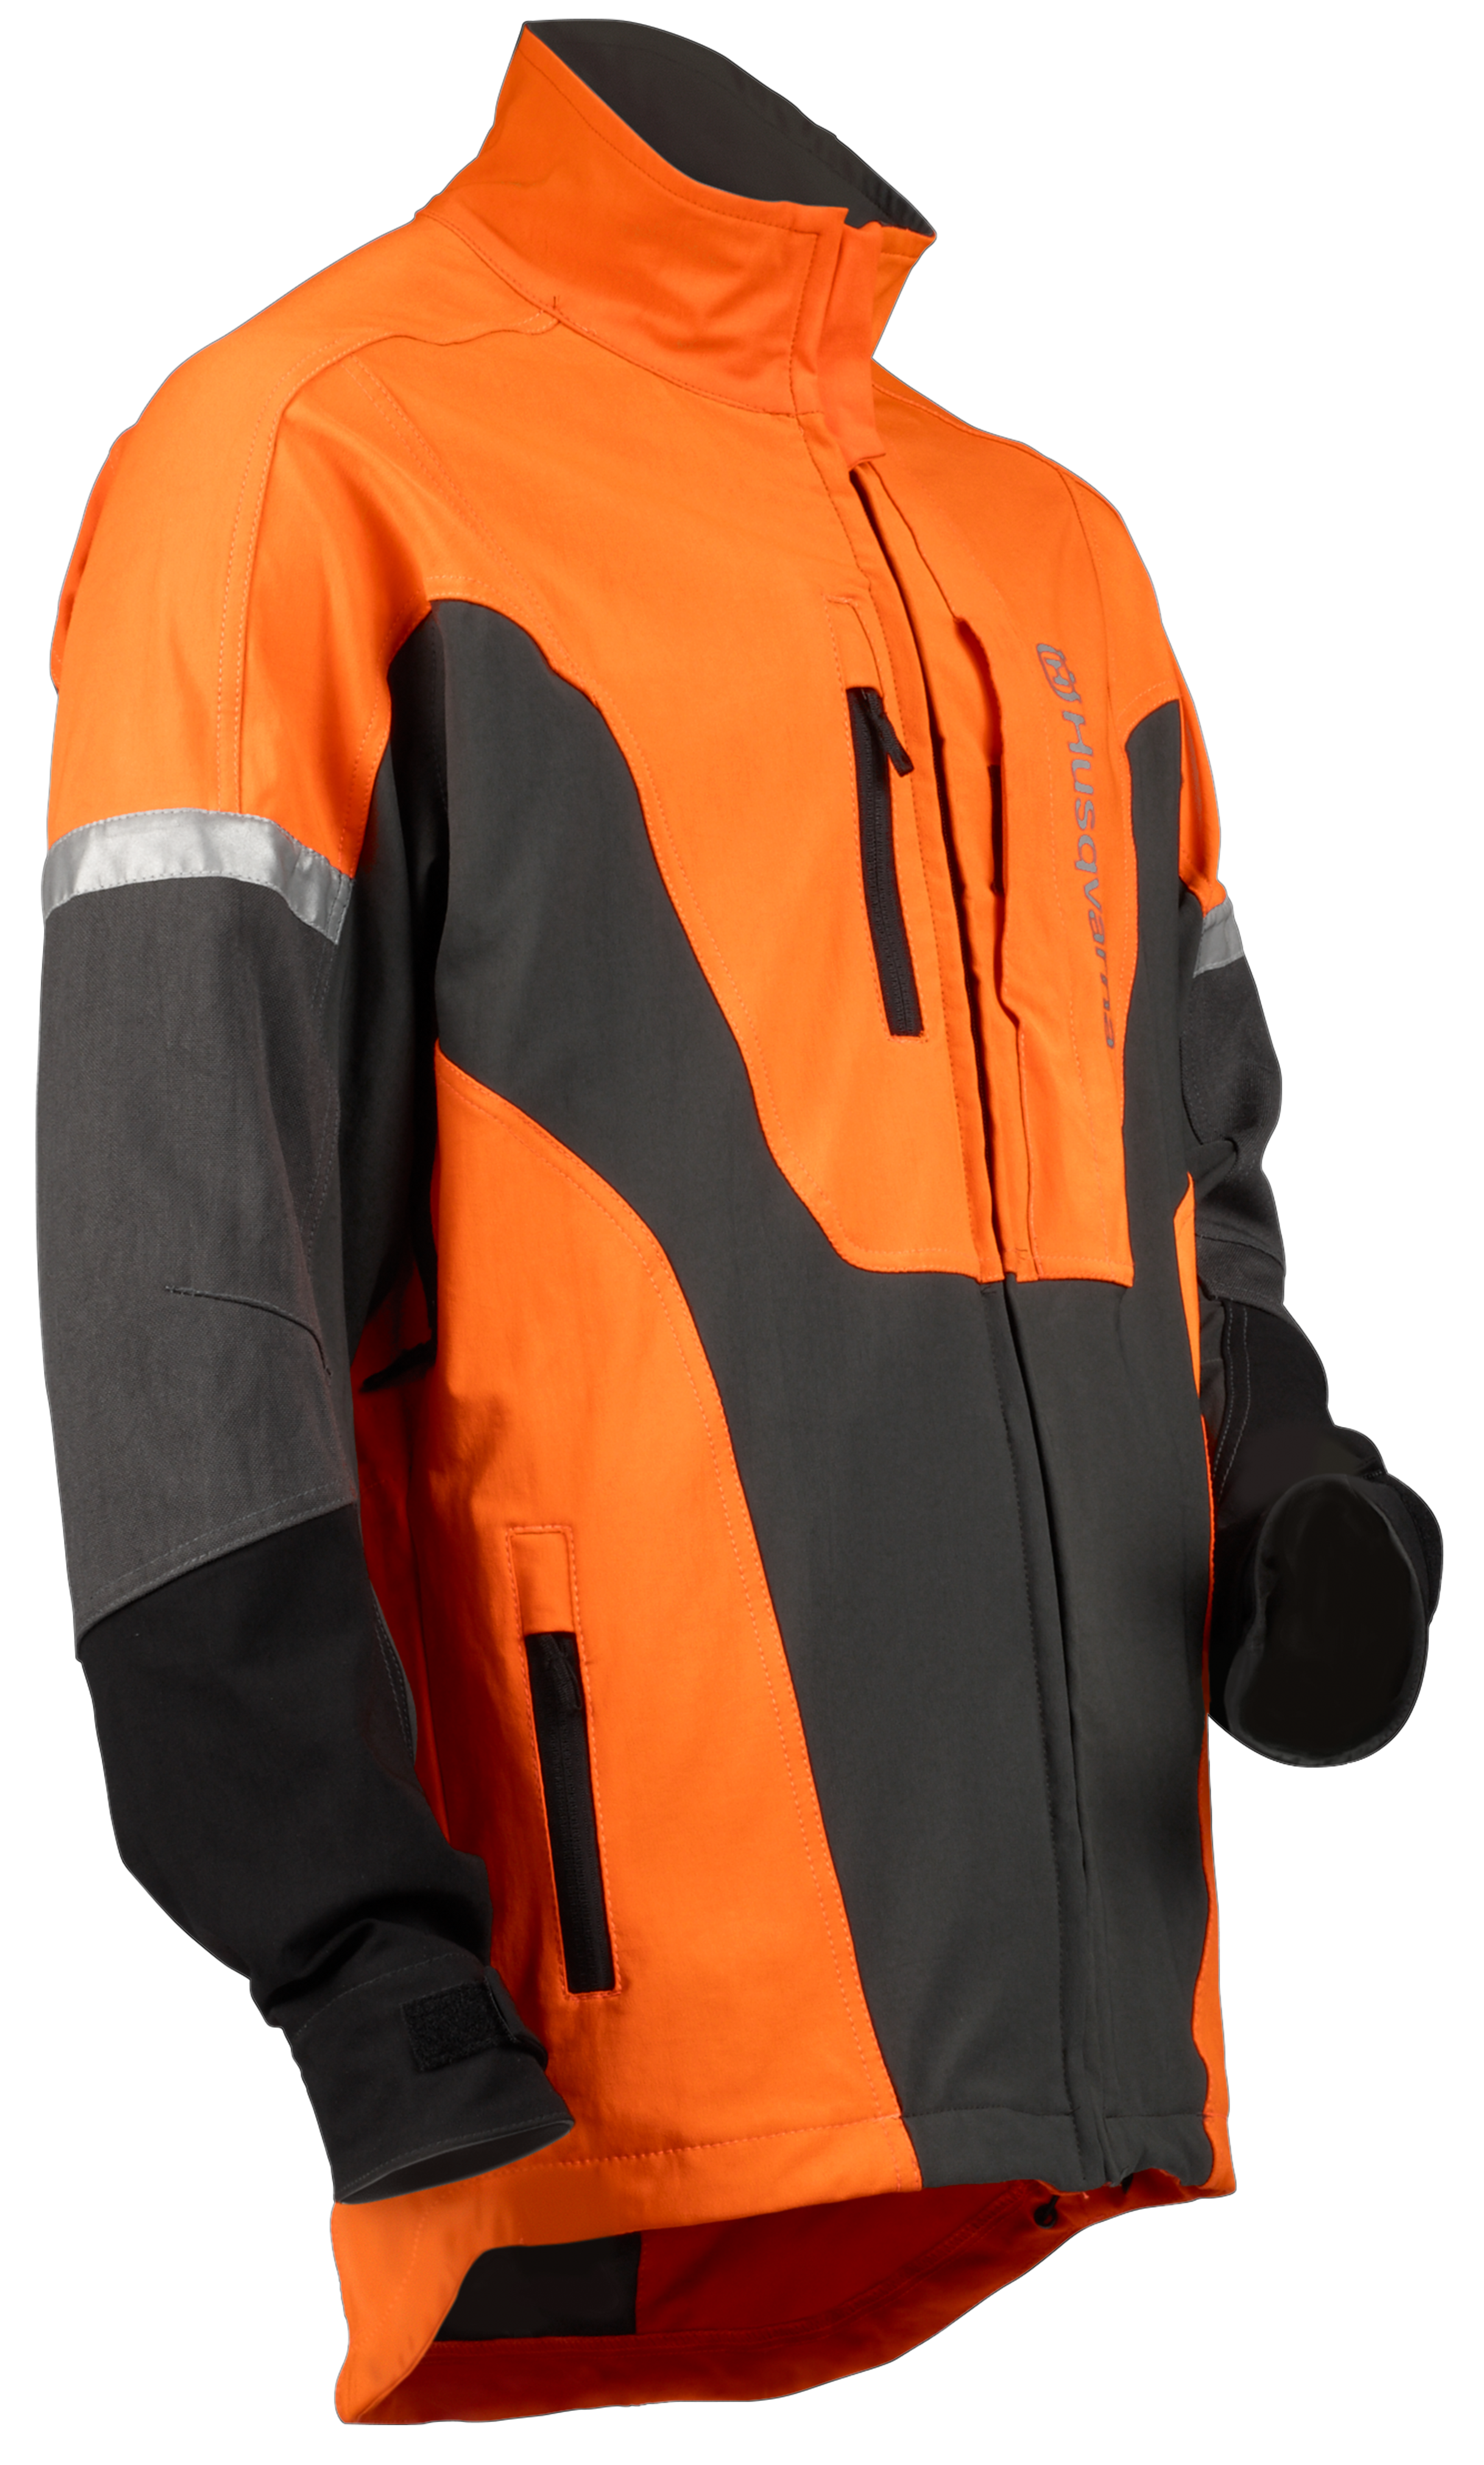 Image for Technical Jacket                                                                                                                 from HusqvarnaB2C